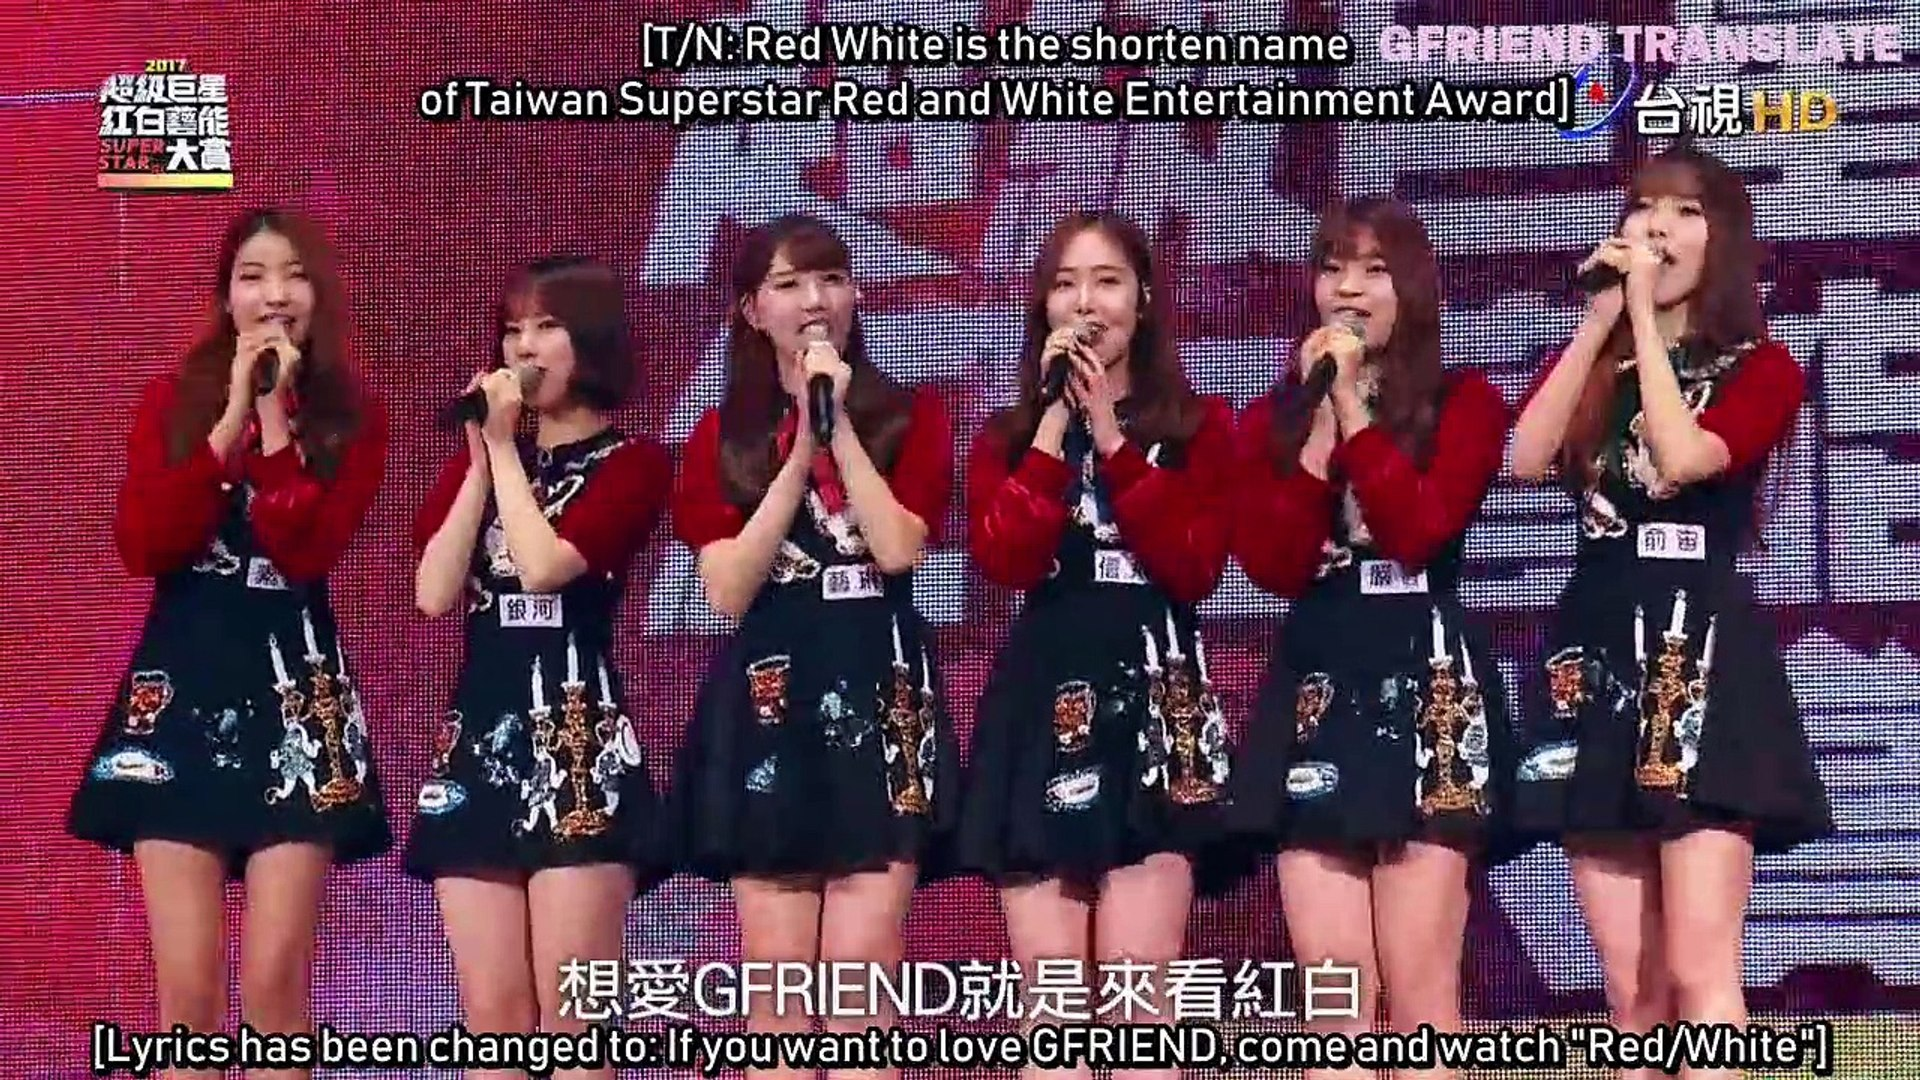 [ENG SUB] 170127 GFRIEND 2017 Taiwan Superstar Red and White Entertainment Awards